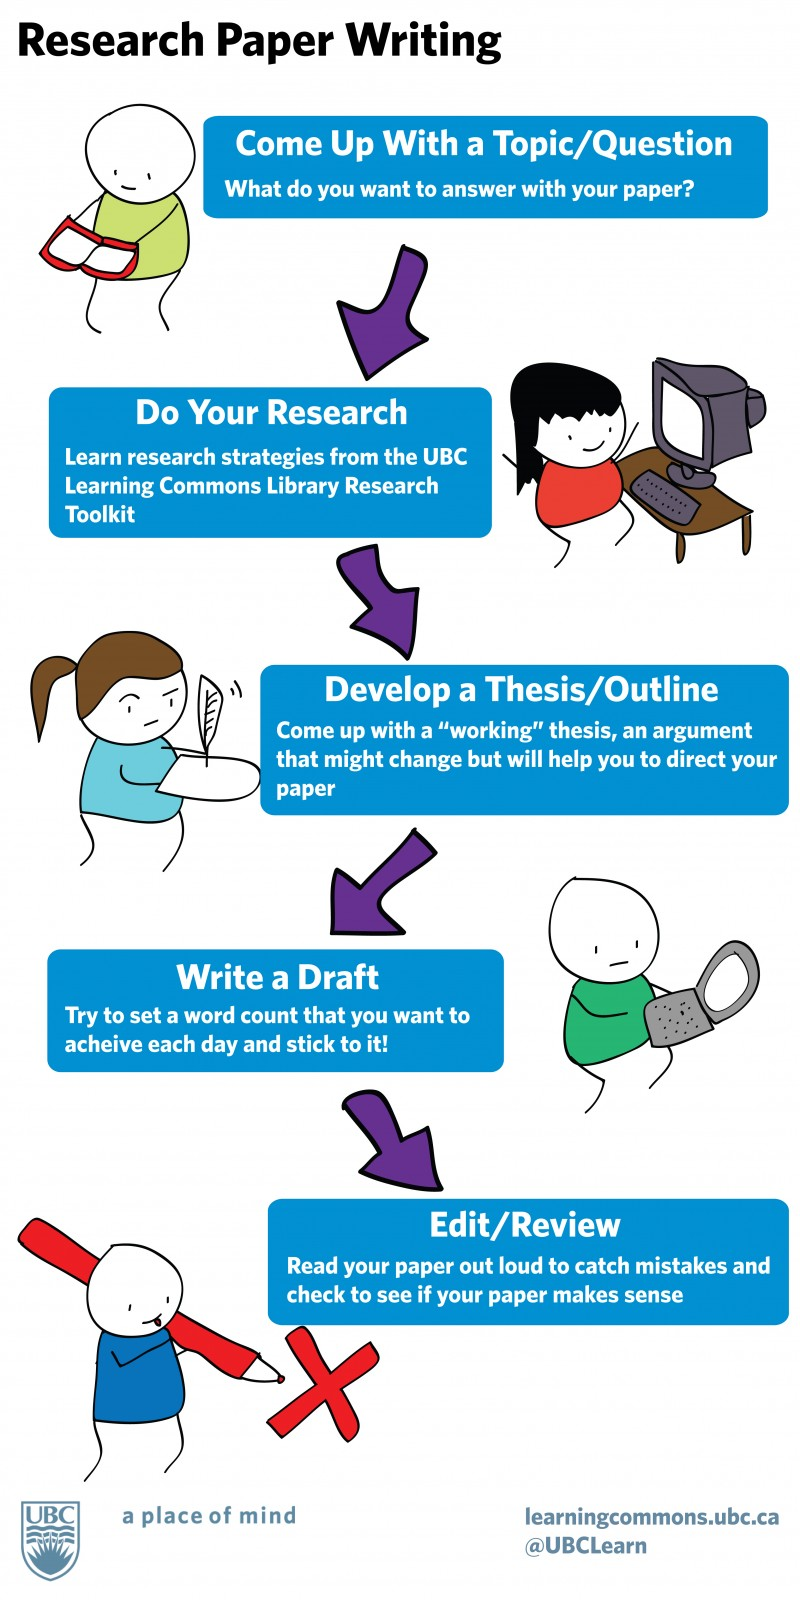 tip to write a research paper Share these tips and printout with your students to keep them focused as they embark on the process of writing a research paper.